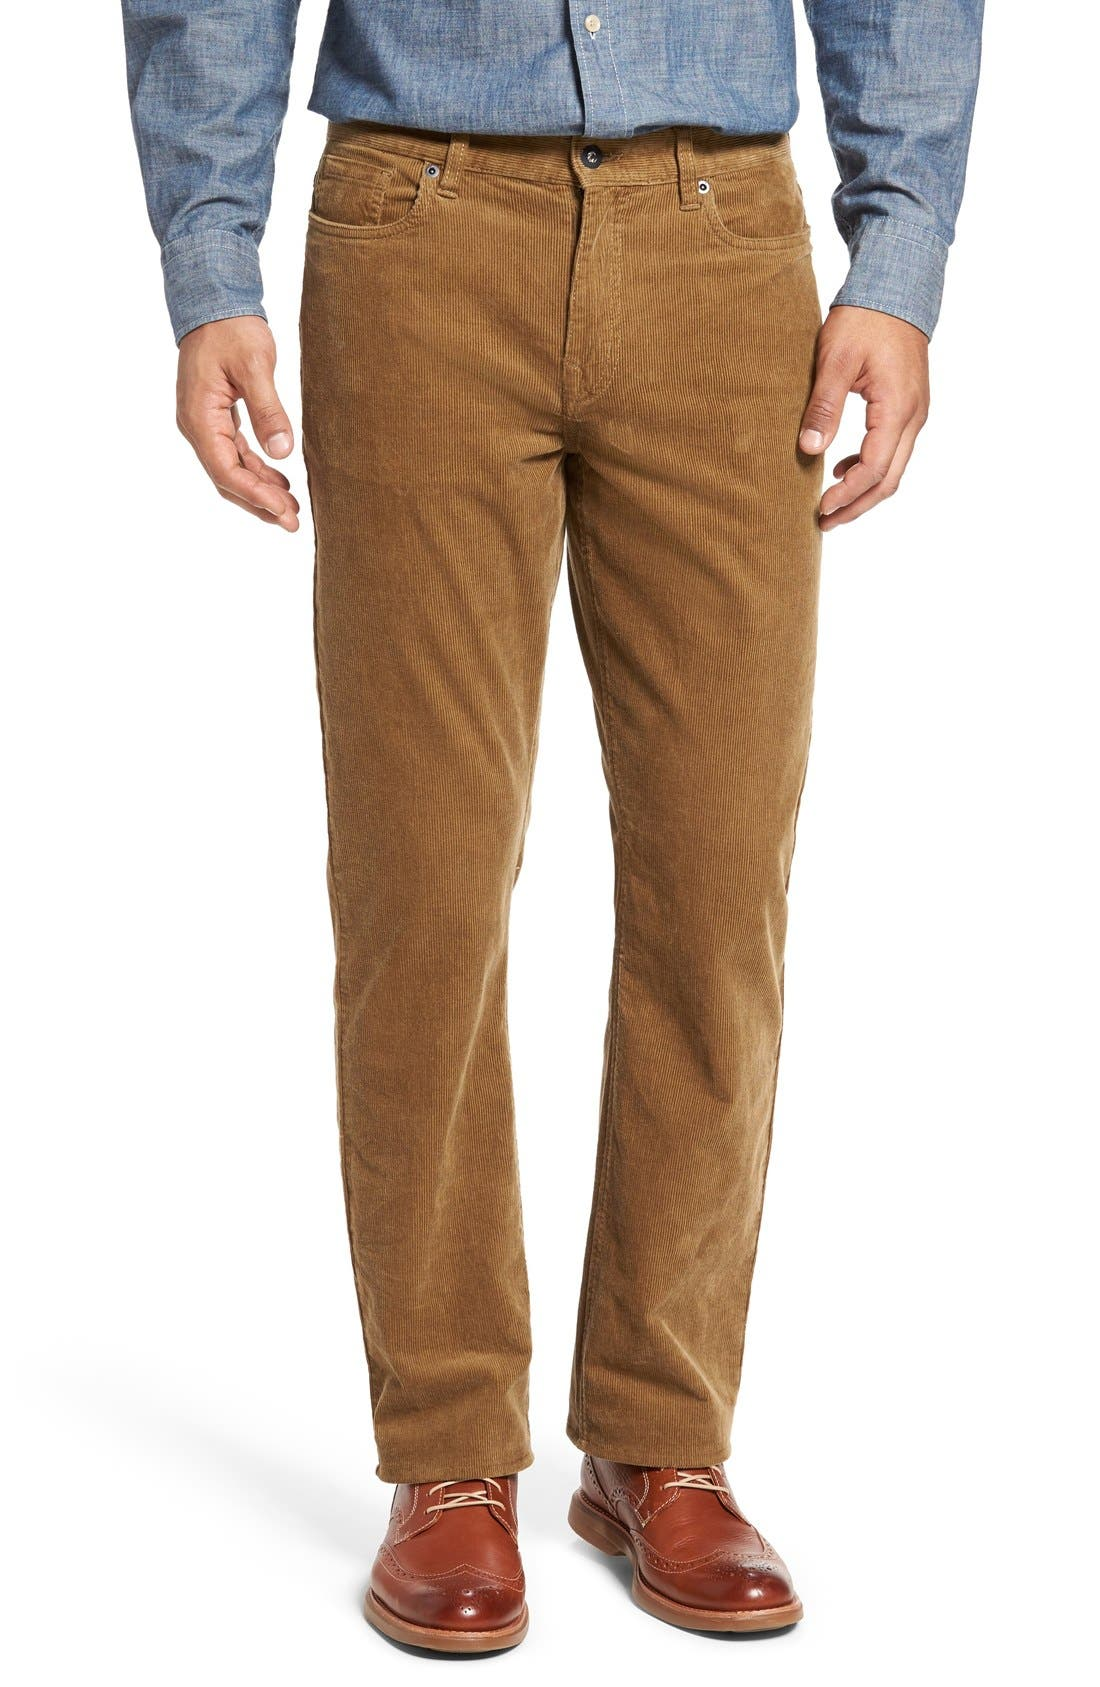 Mens Tall Corduroy Pants wNDhMfuy